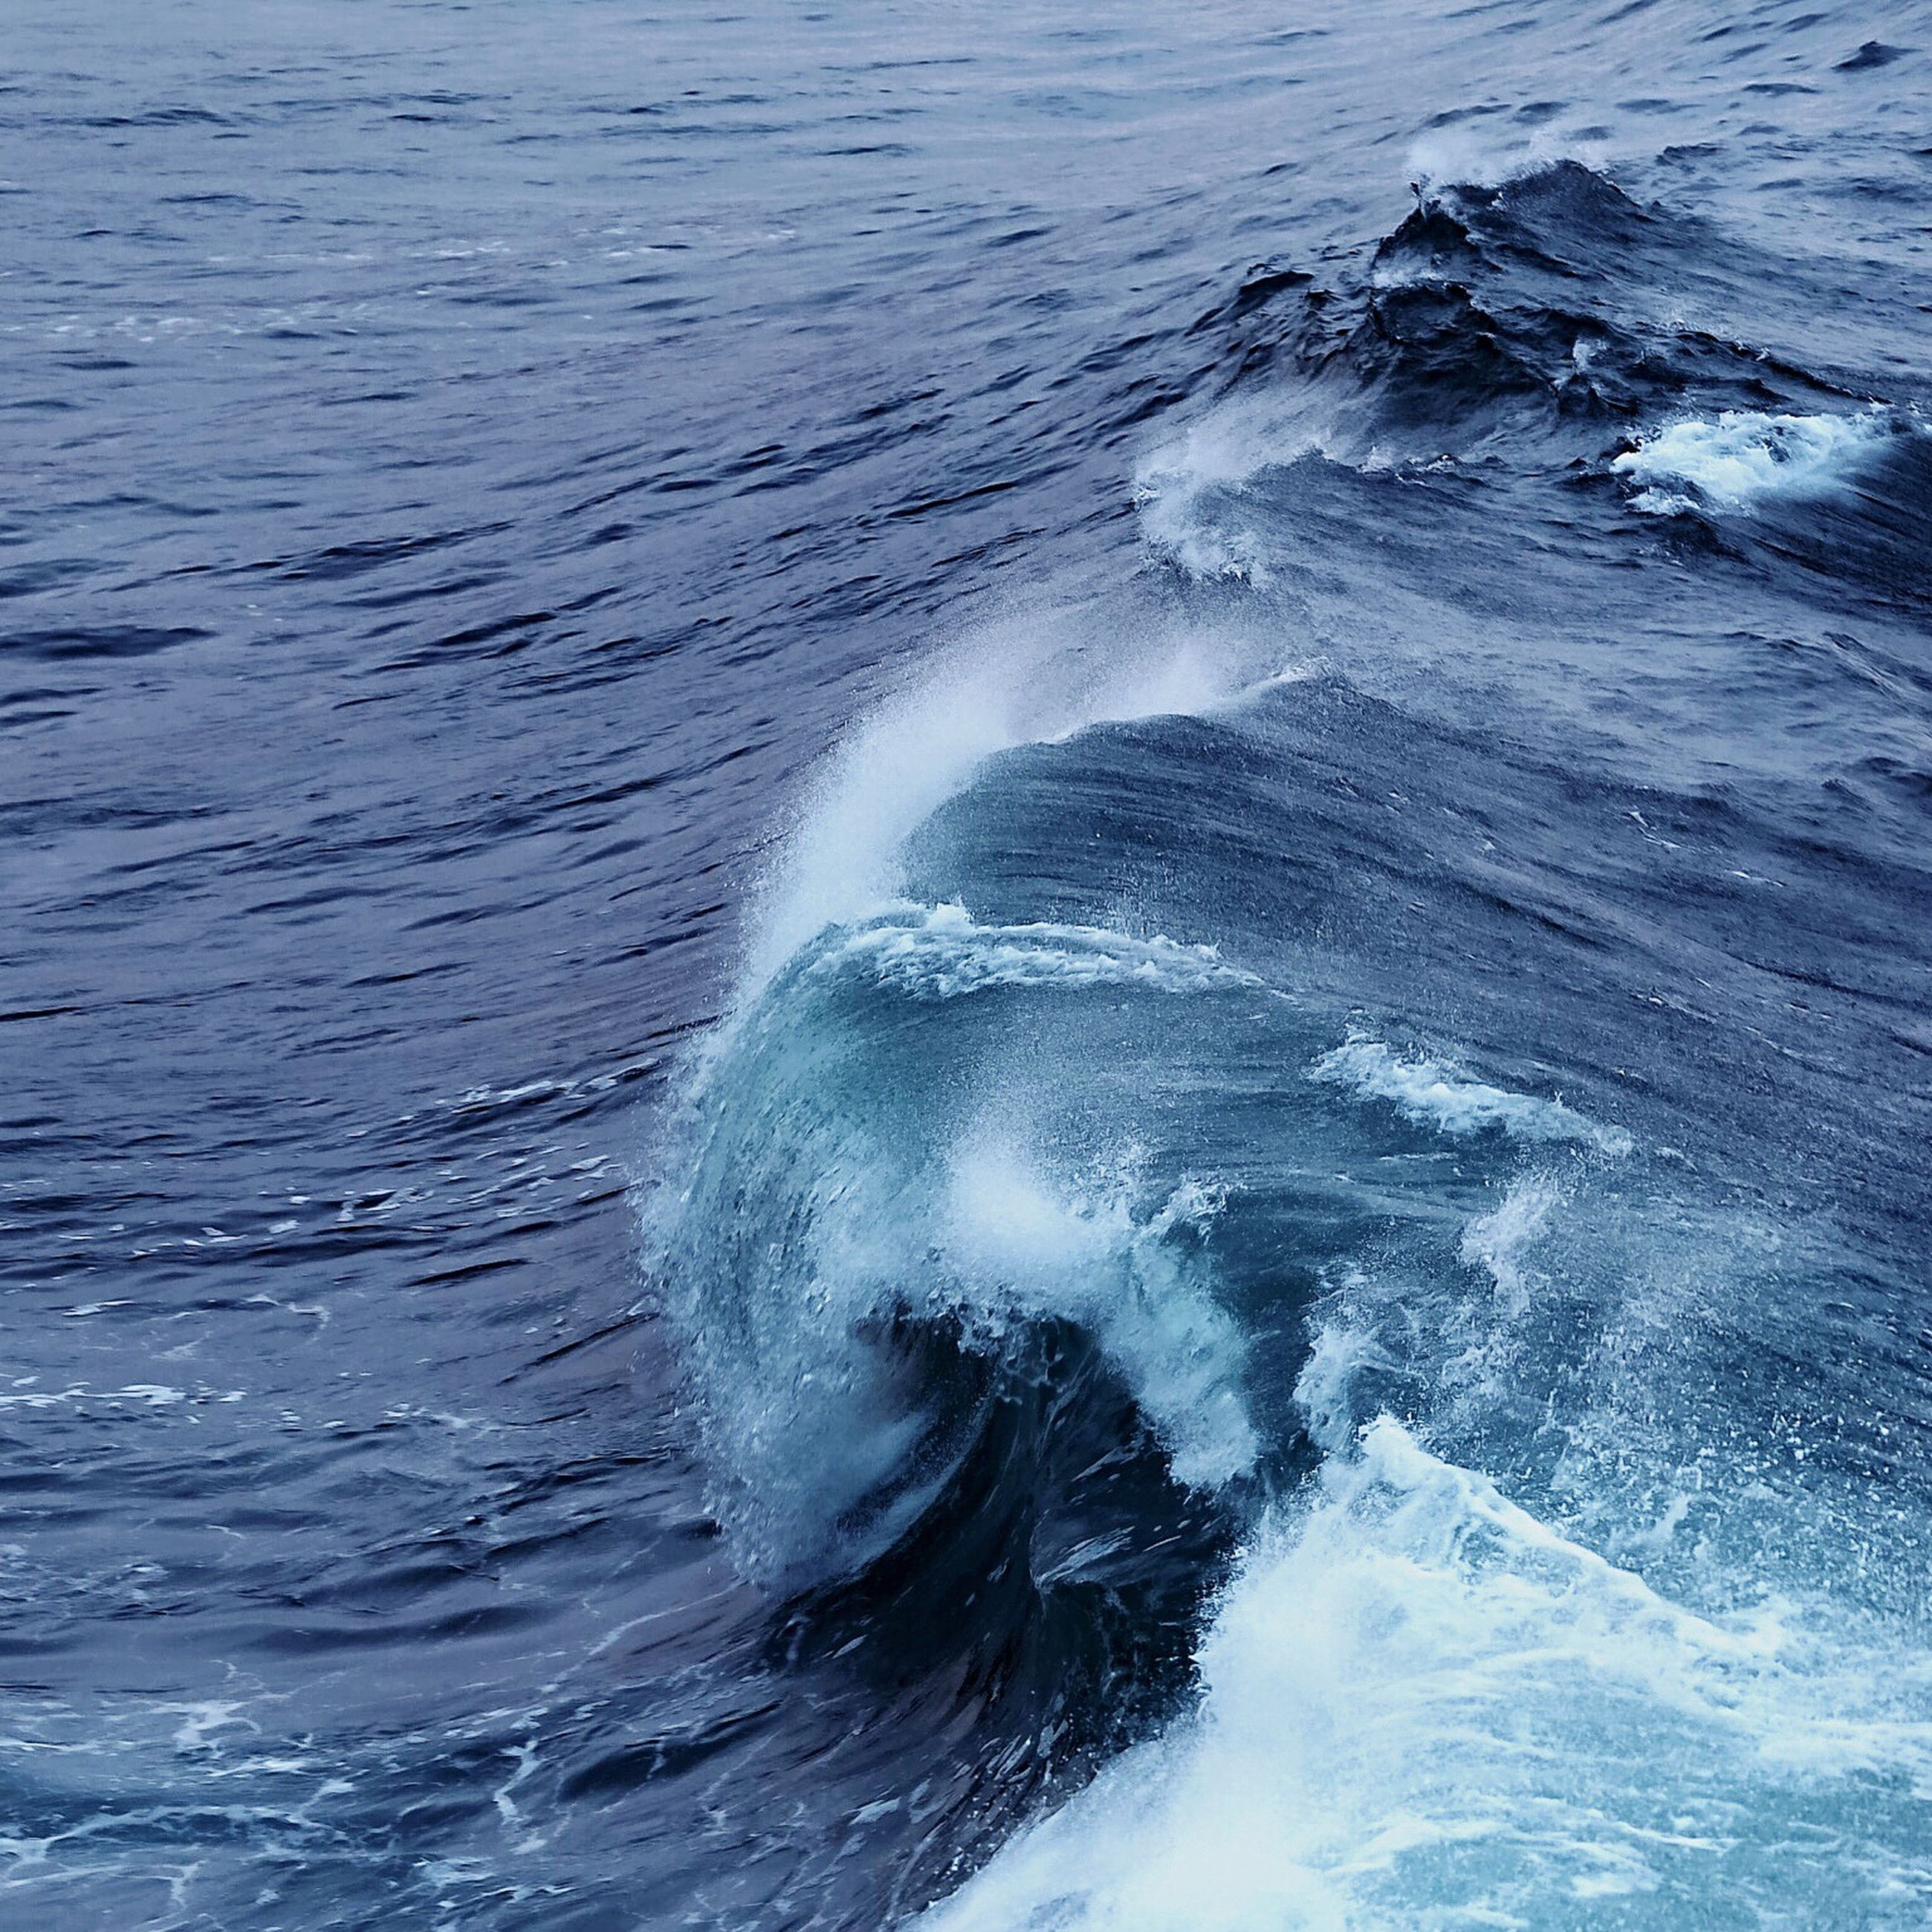 water, sea, wave, motion, waterfront, splashing, rippled, beauty in nature, power in nature, nature, scenics, day, outdoors, no people, tranquility, idyllic, seascape, water surface, tranquil scene, remote, ocean, backgrounds, full frame, close-up, non-urban scene, blue